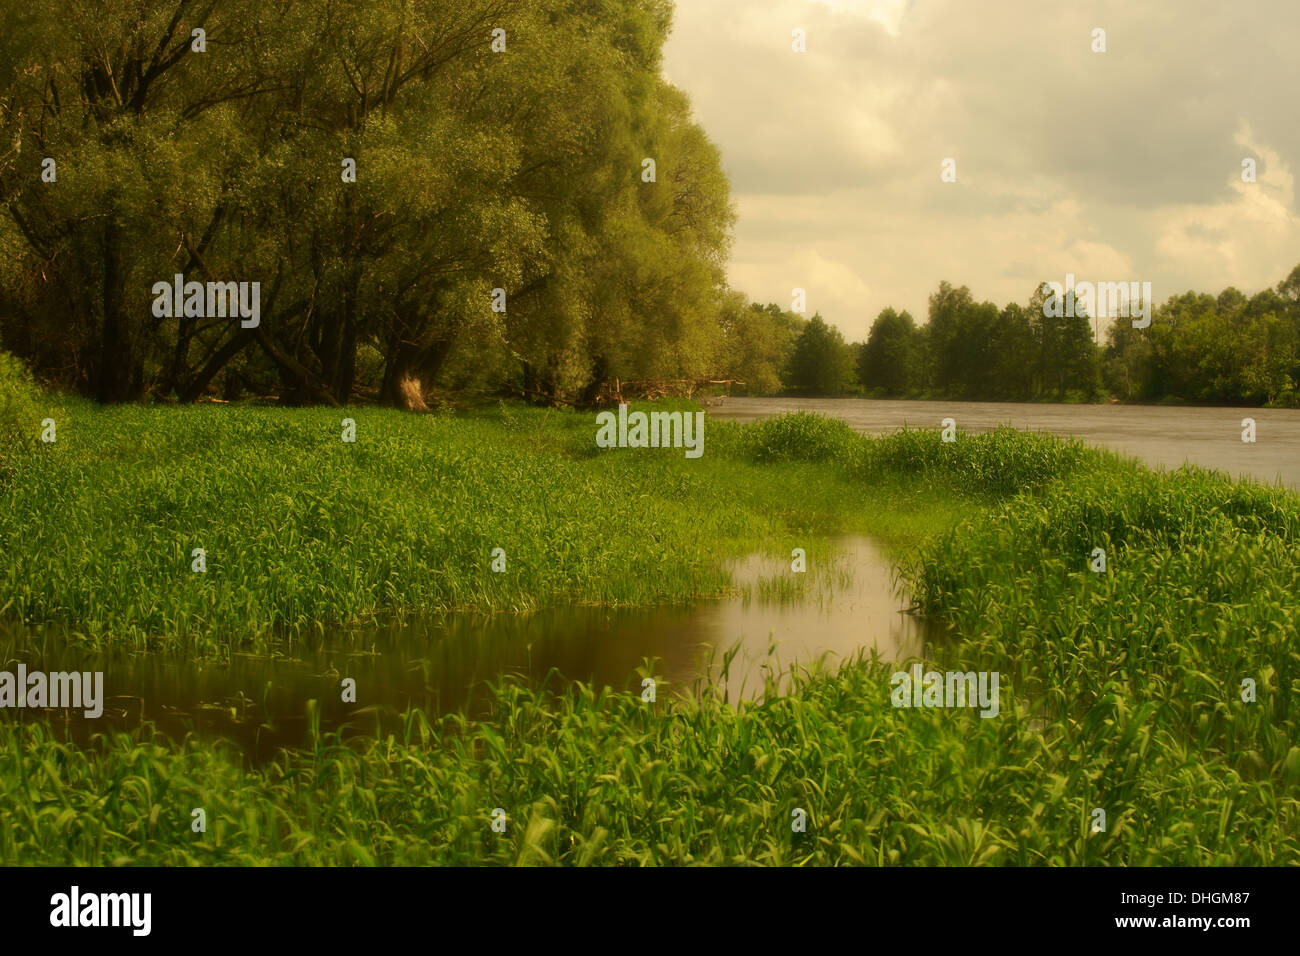 The Bug river in Podlaskie Province, north eastern Poland. Stock Photo